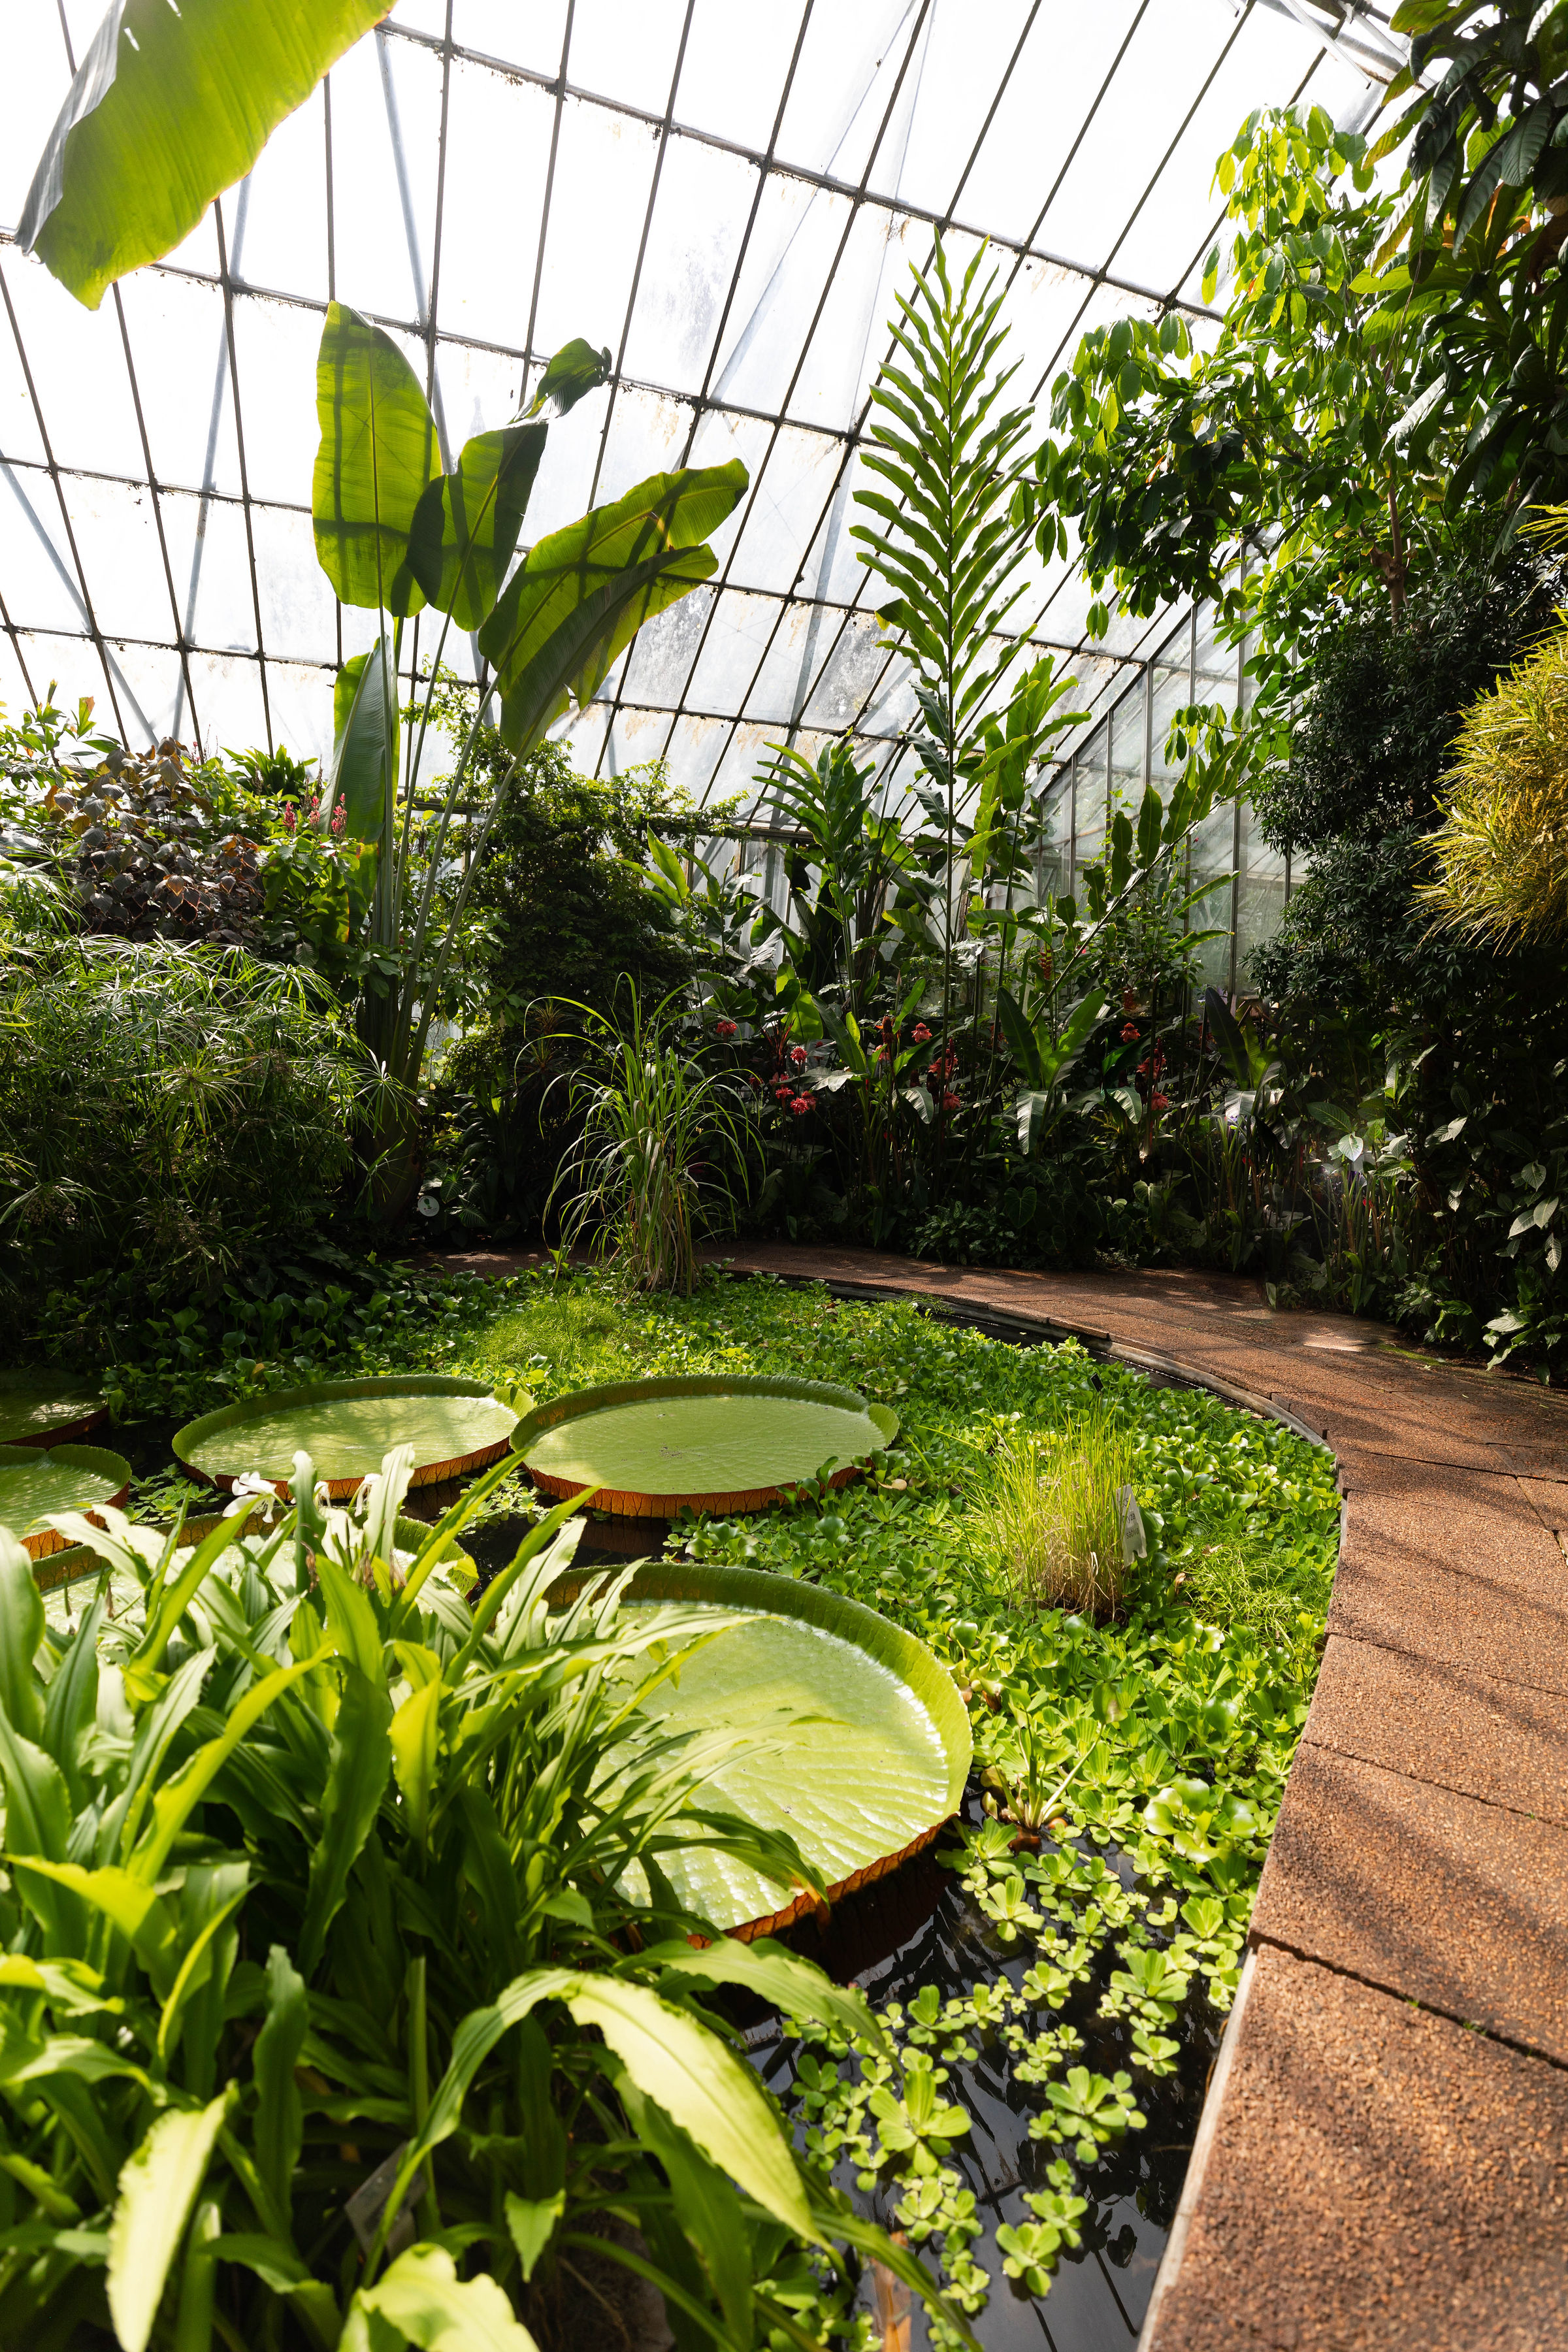 Victoria Lilies, Giant Waterlilies at Royal Botanic Gardens Edinburgh in Edinburgh, Scotland United Kingdom